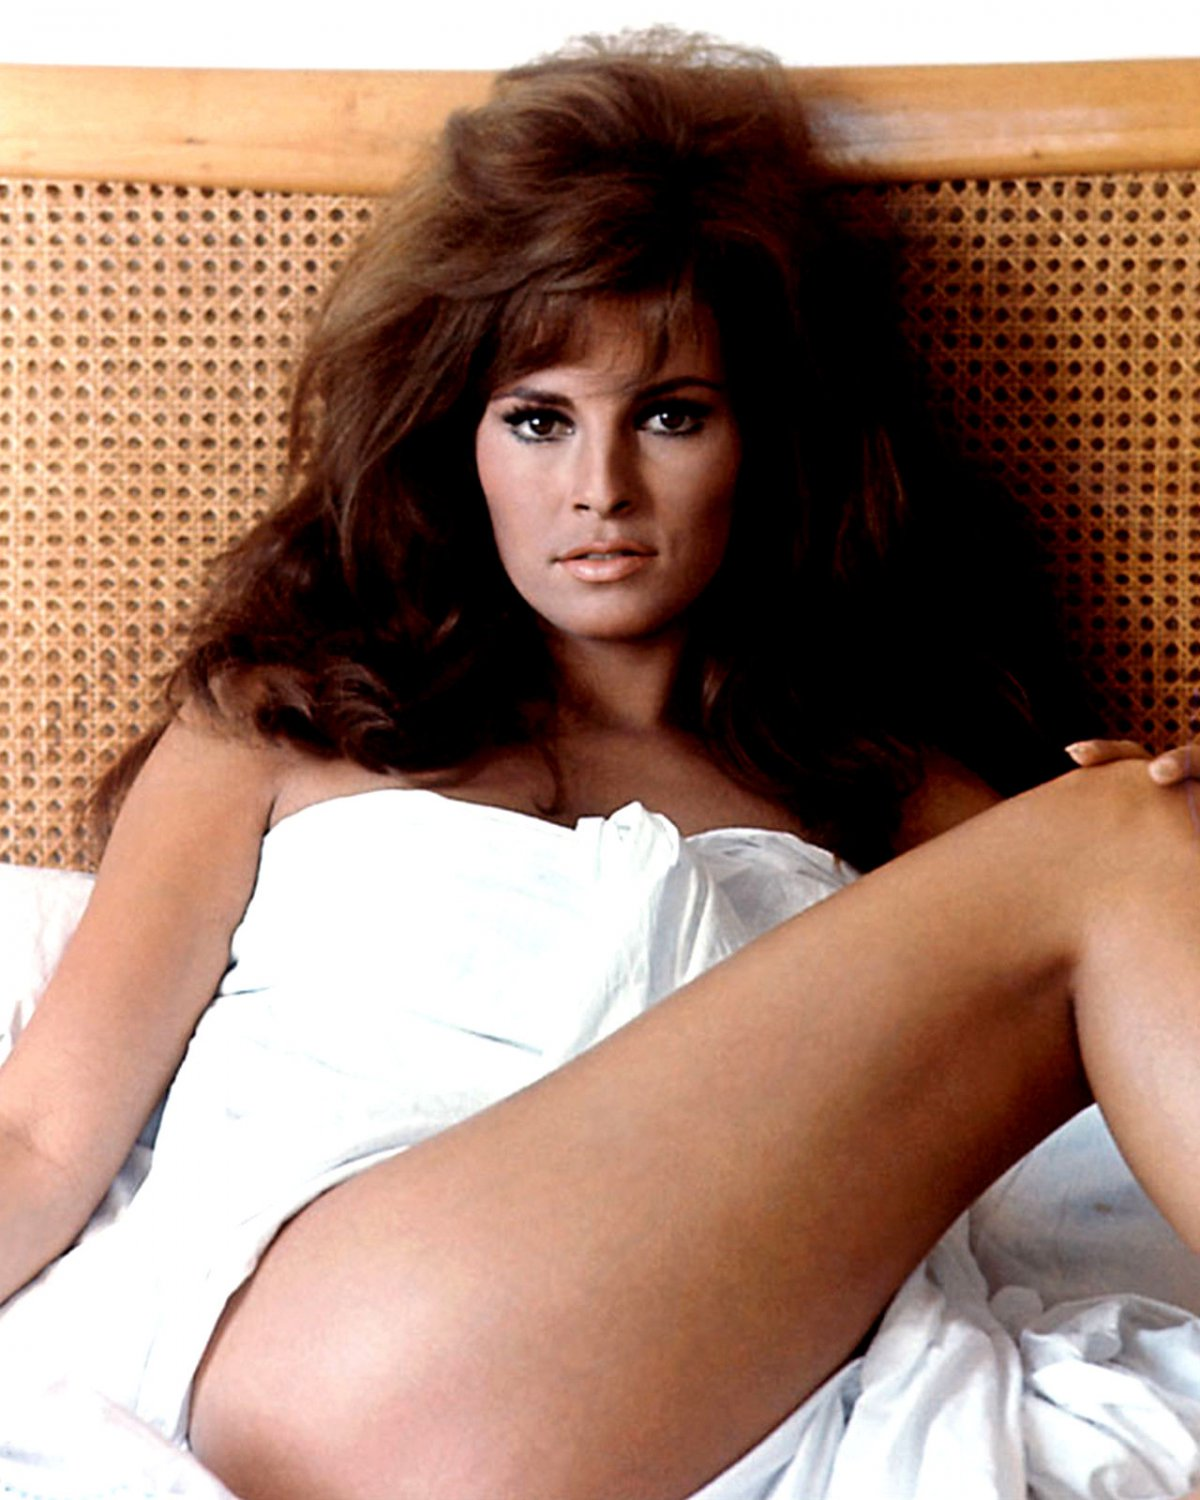 RAQUEL WELCH ACTRESS AND SEX-SYMBOL - 8X10 PUBLICITY PHOTO (SP-012)